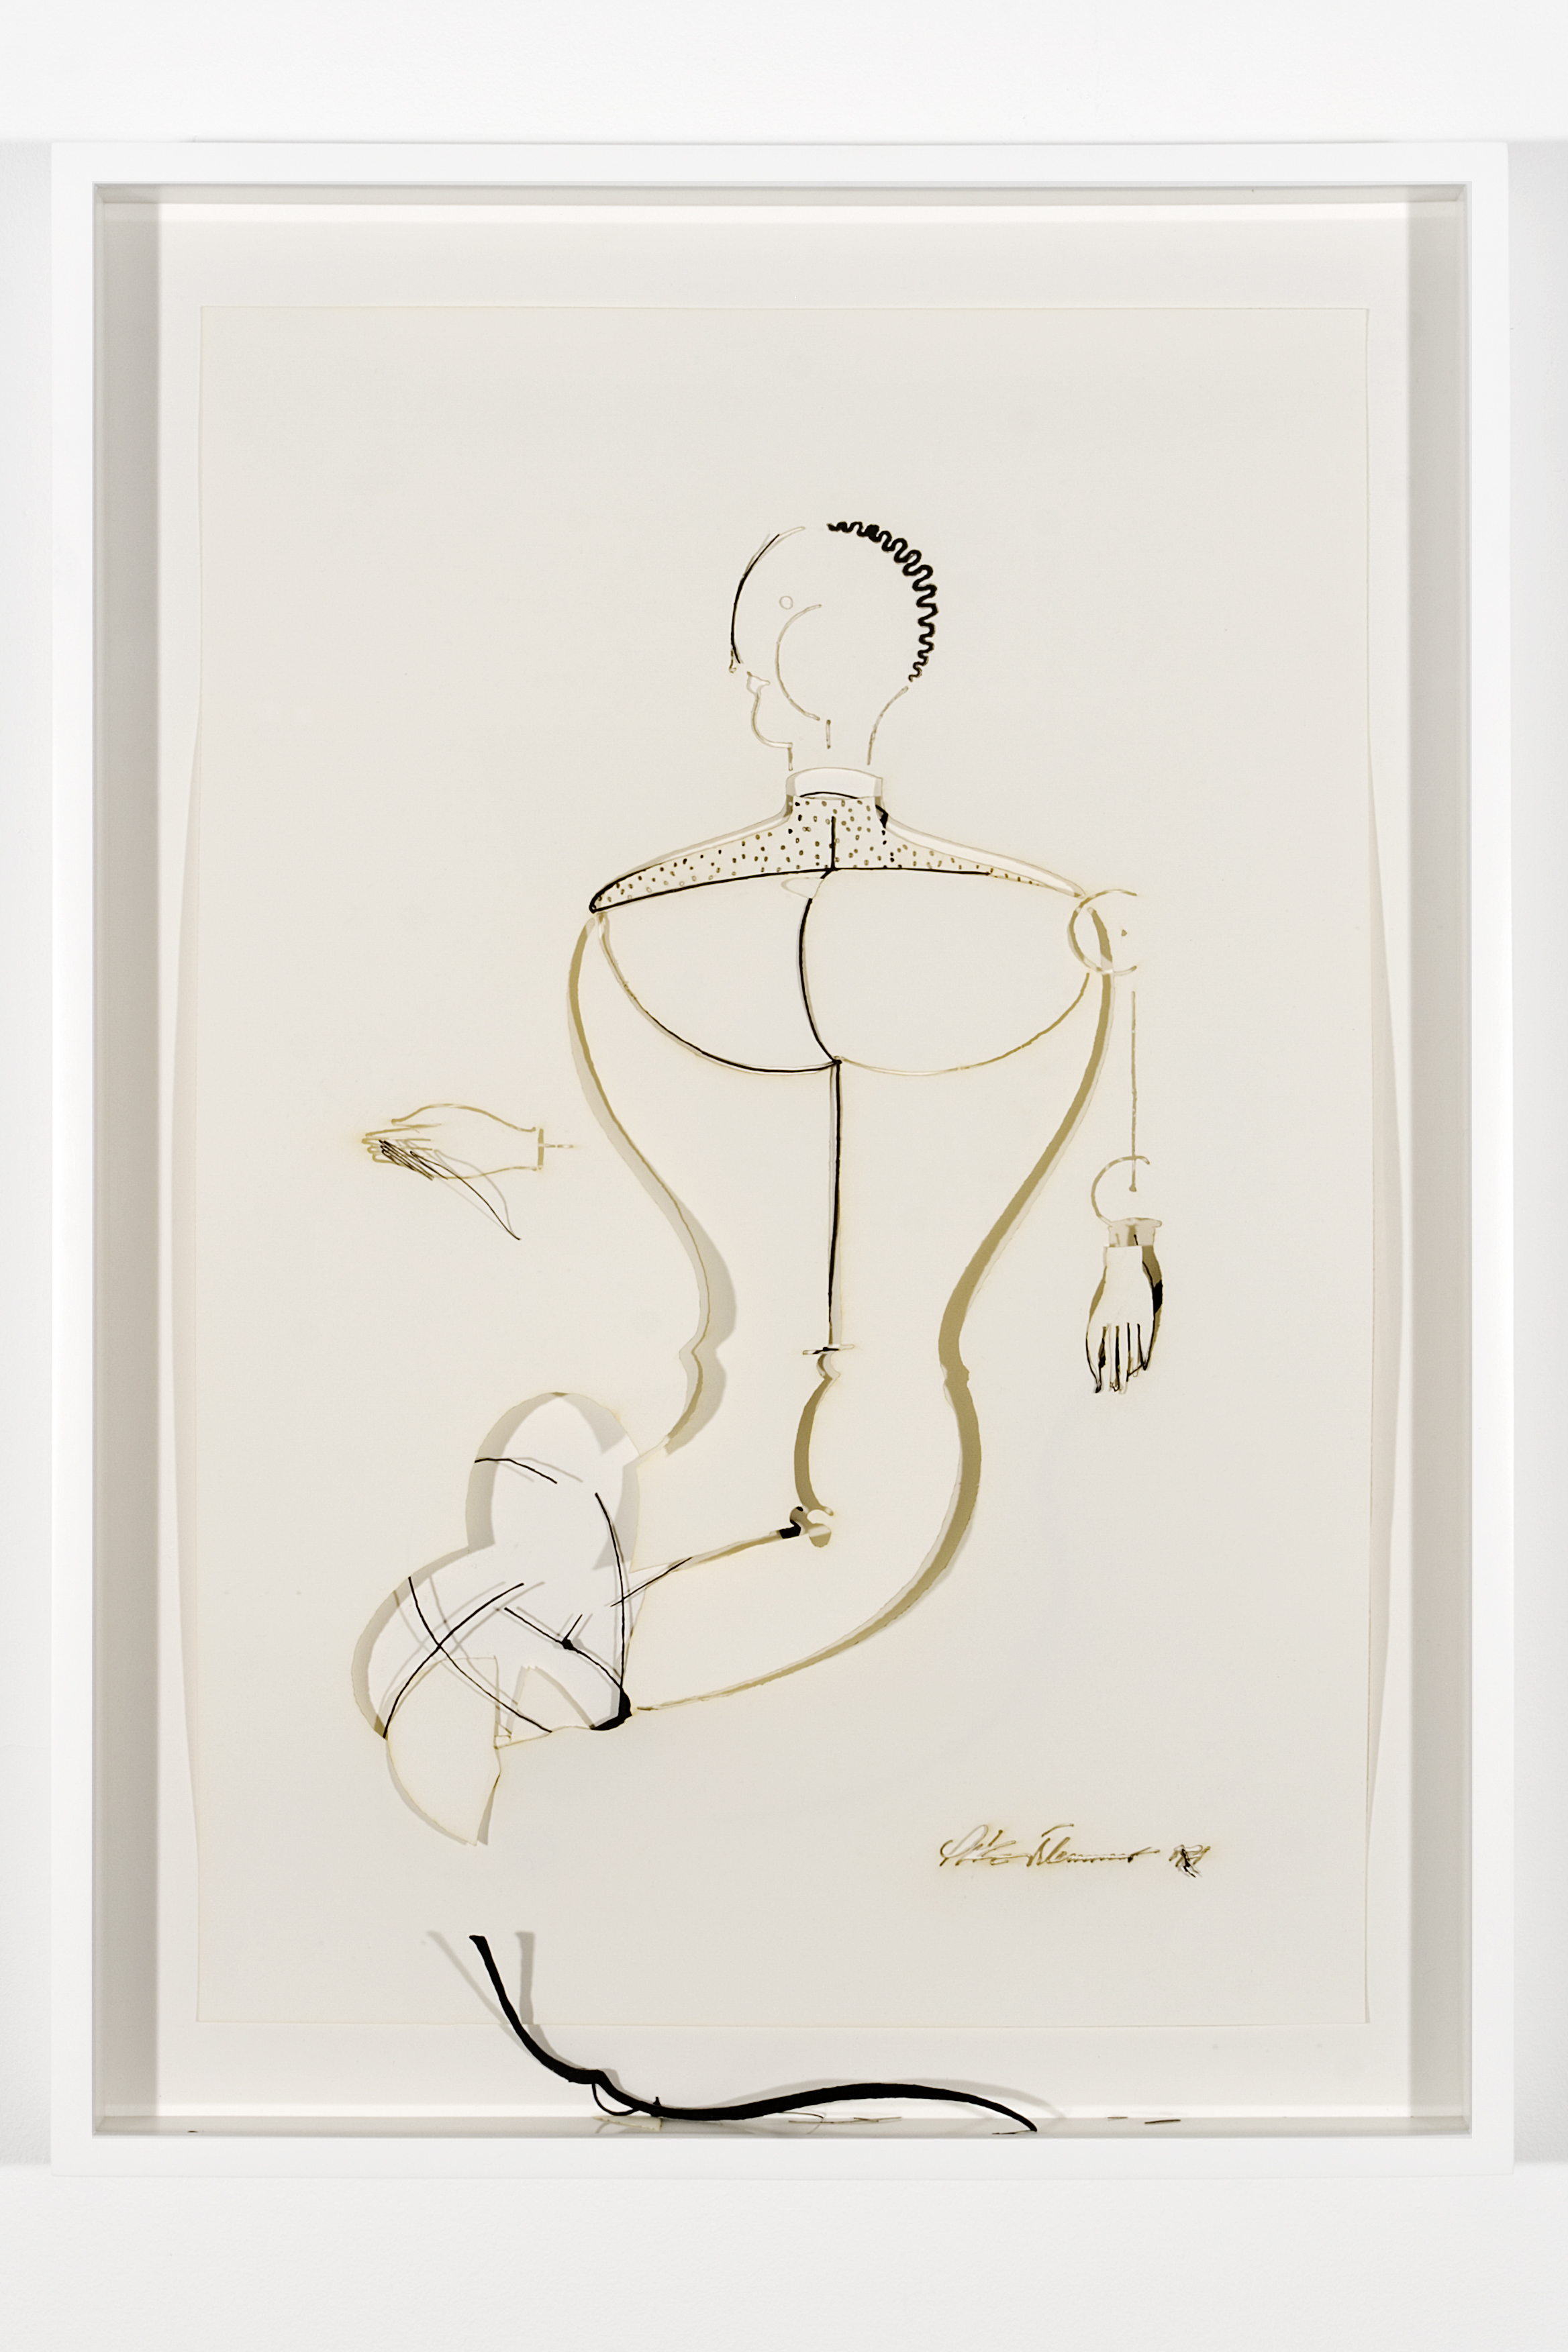 "Collapsed Drawing: ""Abstrakte Figur, Kopf Mach Links"" (Oskar Schlemmer), 2007 laser-cut paper and laser-cut archival digital print mounted on museum board 72,5 x 52,2 cm - 28 1/2 x 20 1/2 inches (framed)"